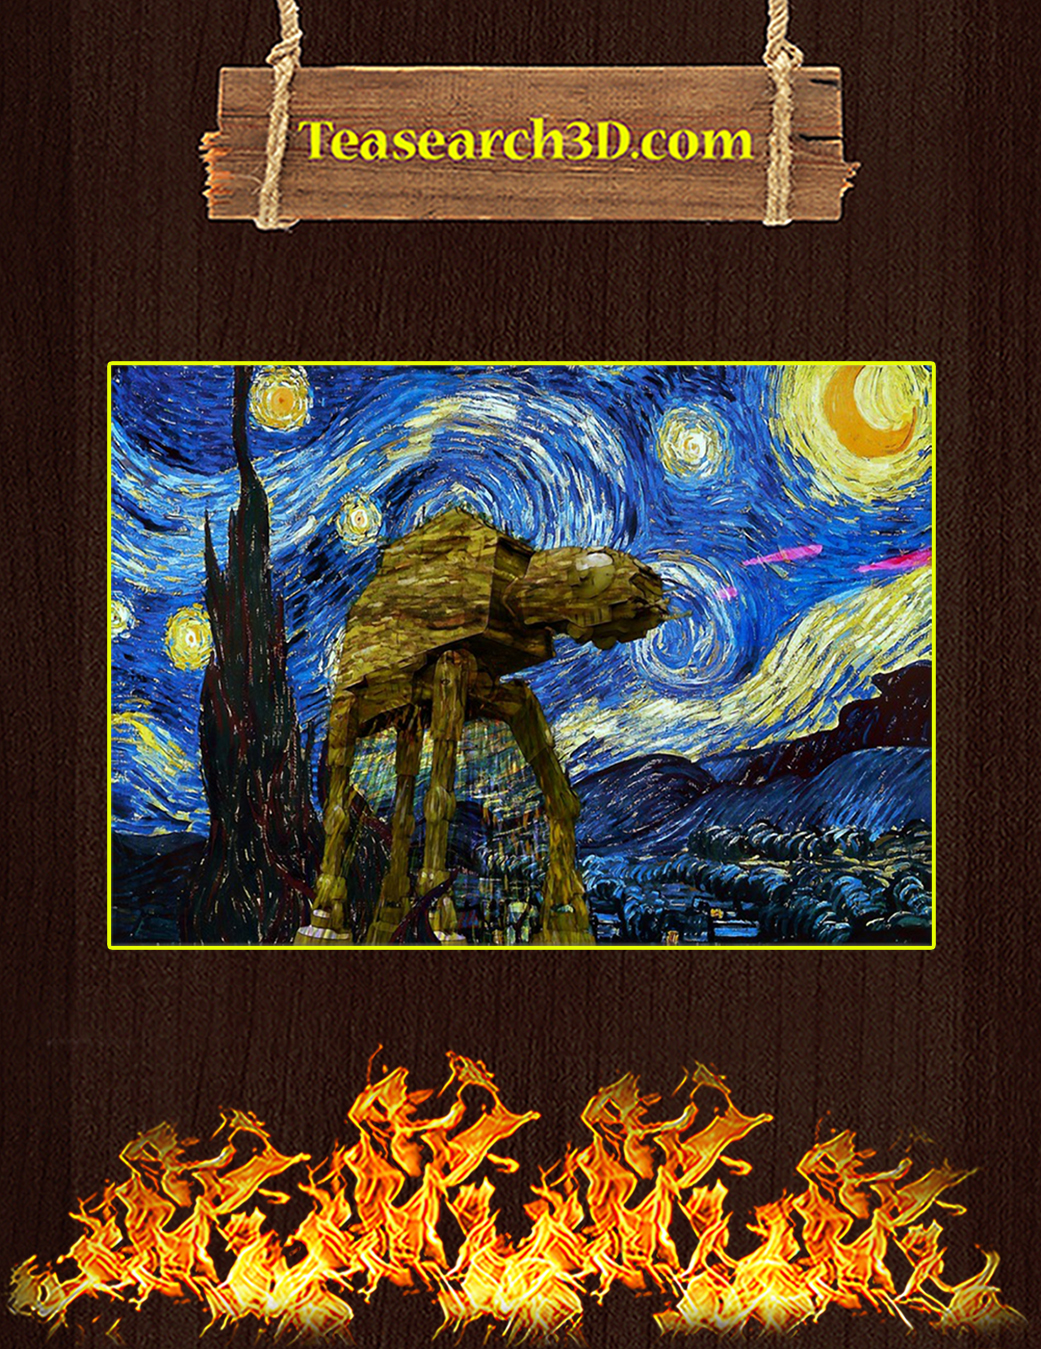 All Terrain Armored Transport starry night van gogh poster A1